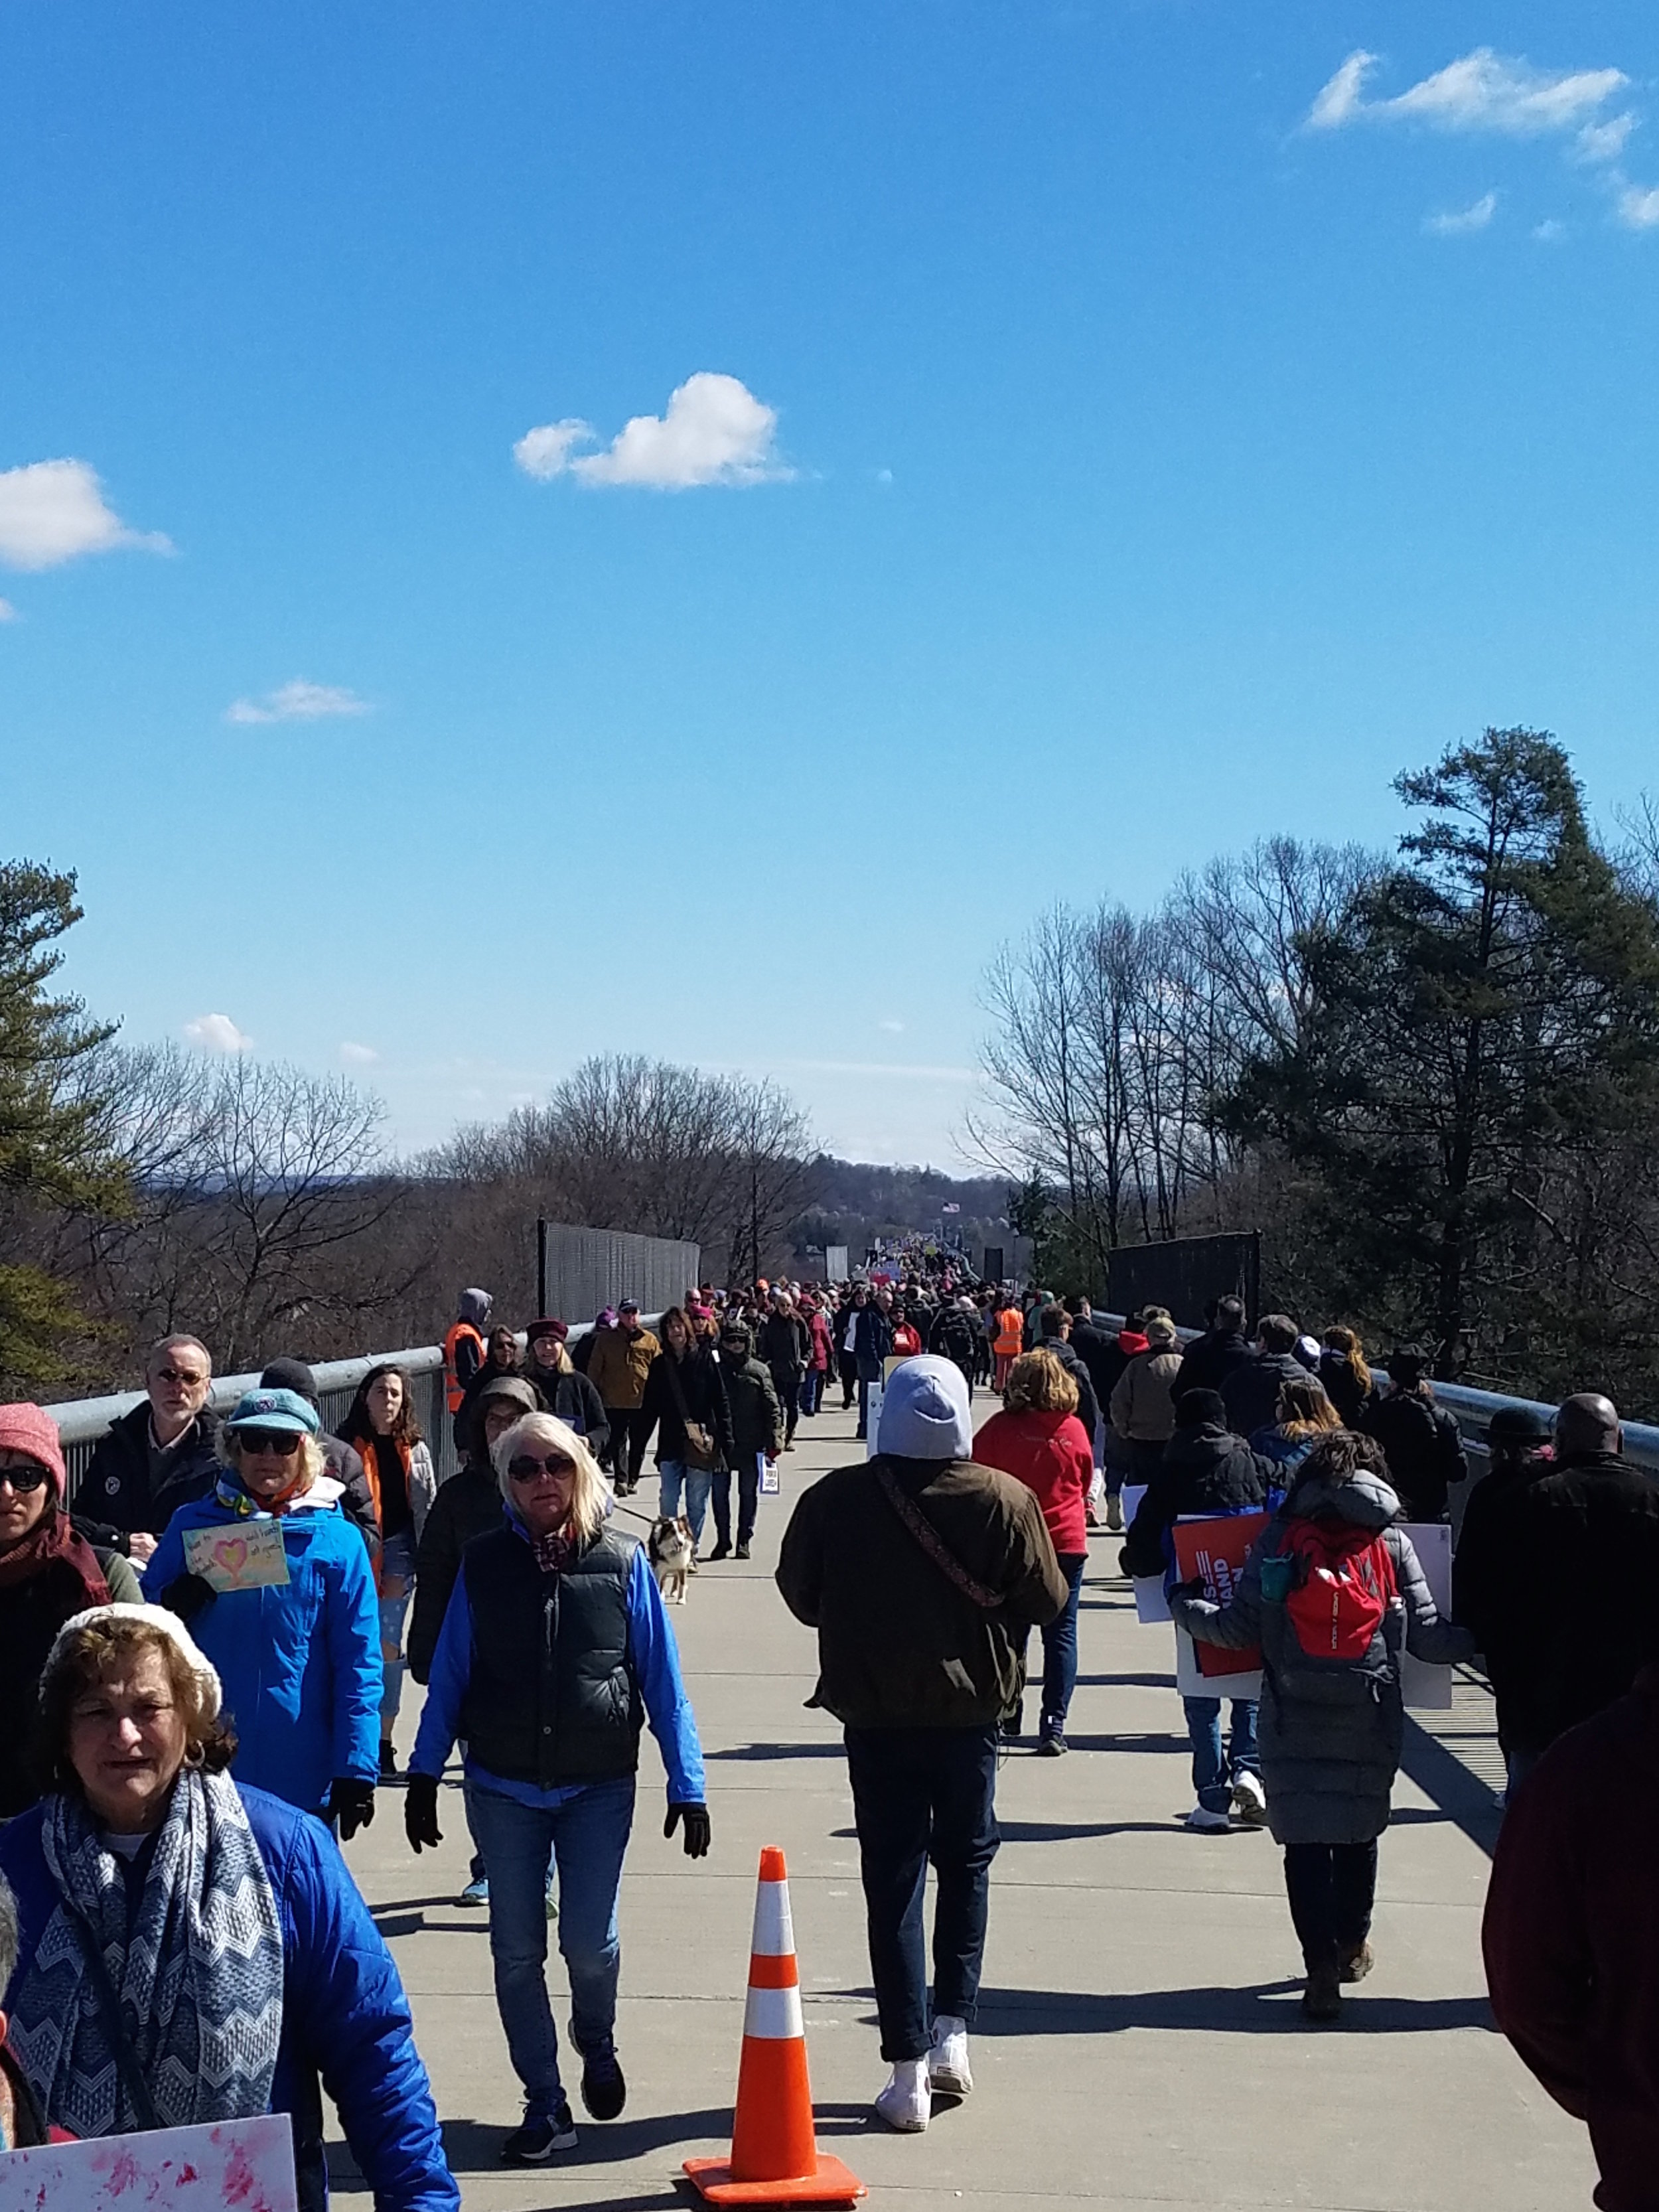 Hundreds march across the Walkway over the Hudson to protest gun violence in America. Photo Courtesy of Tony Cabral